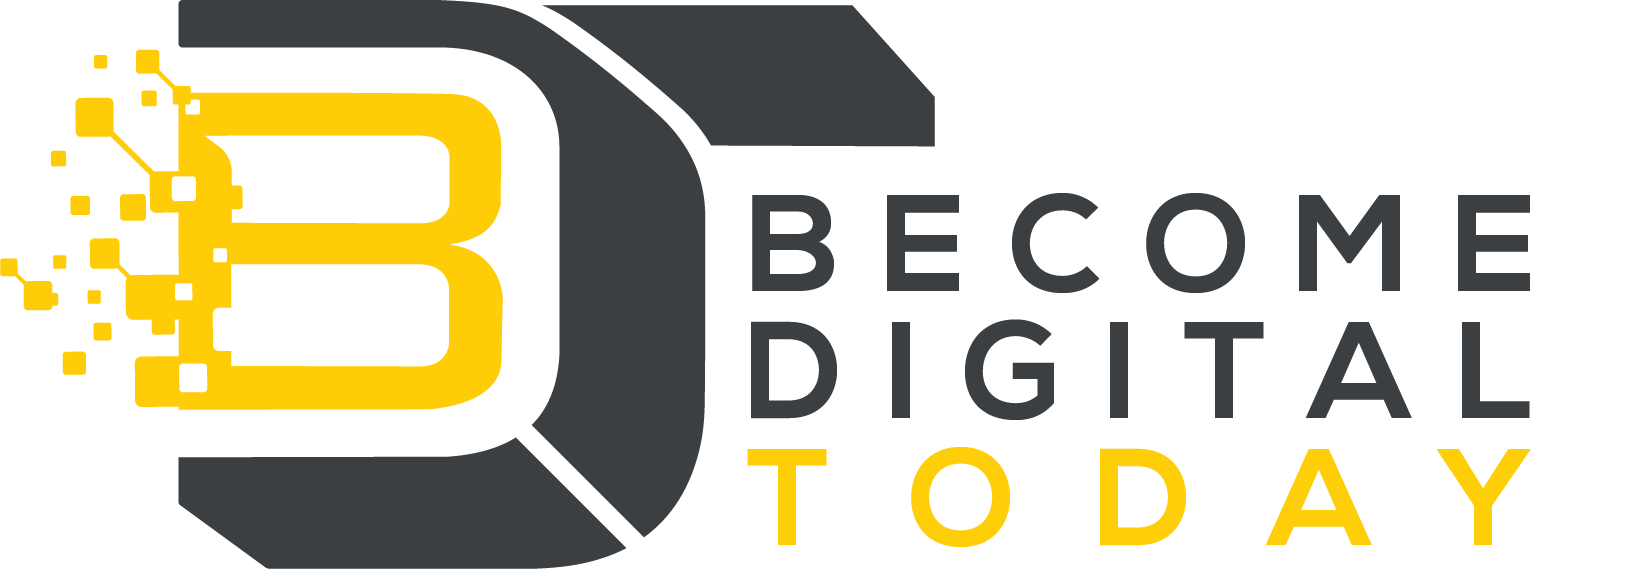 Become Digital Today, a chatbot developer